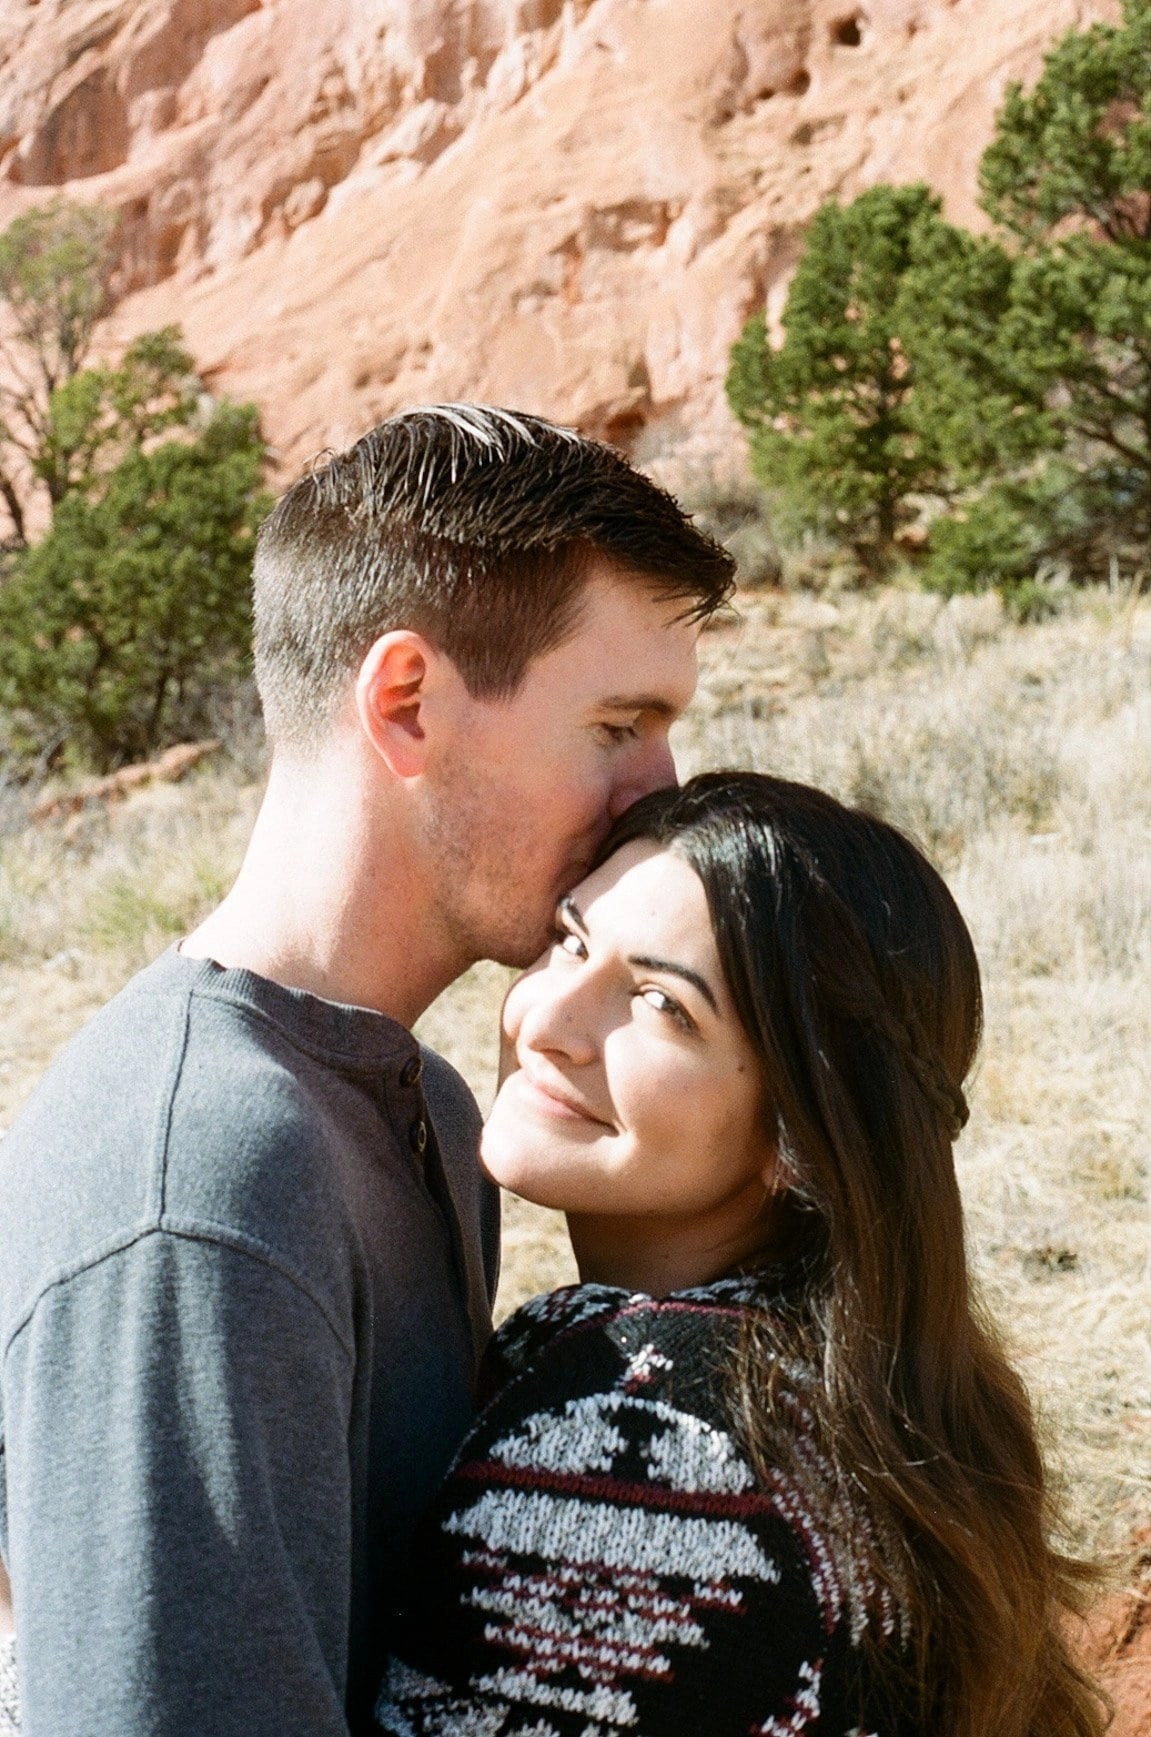 Garden of the Gods on film. A couple has their engagement session in Colorado among the iconic red rocks in Colorado's most photographed place